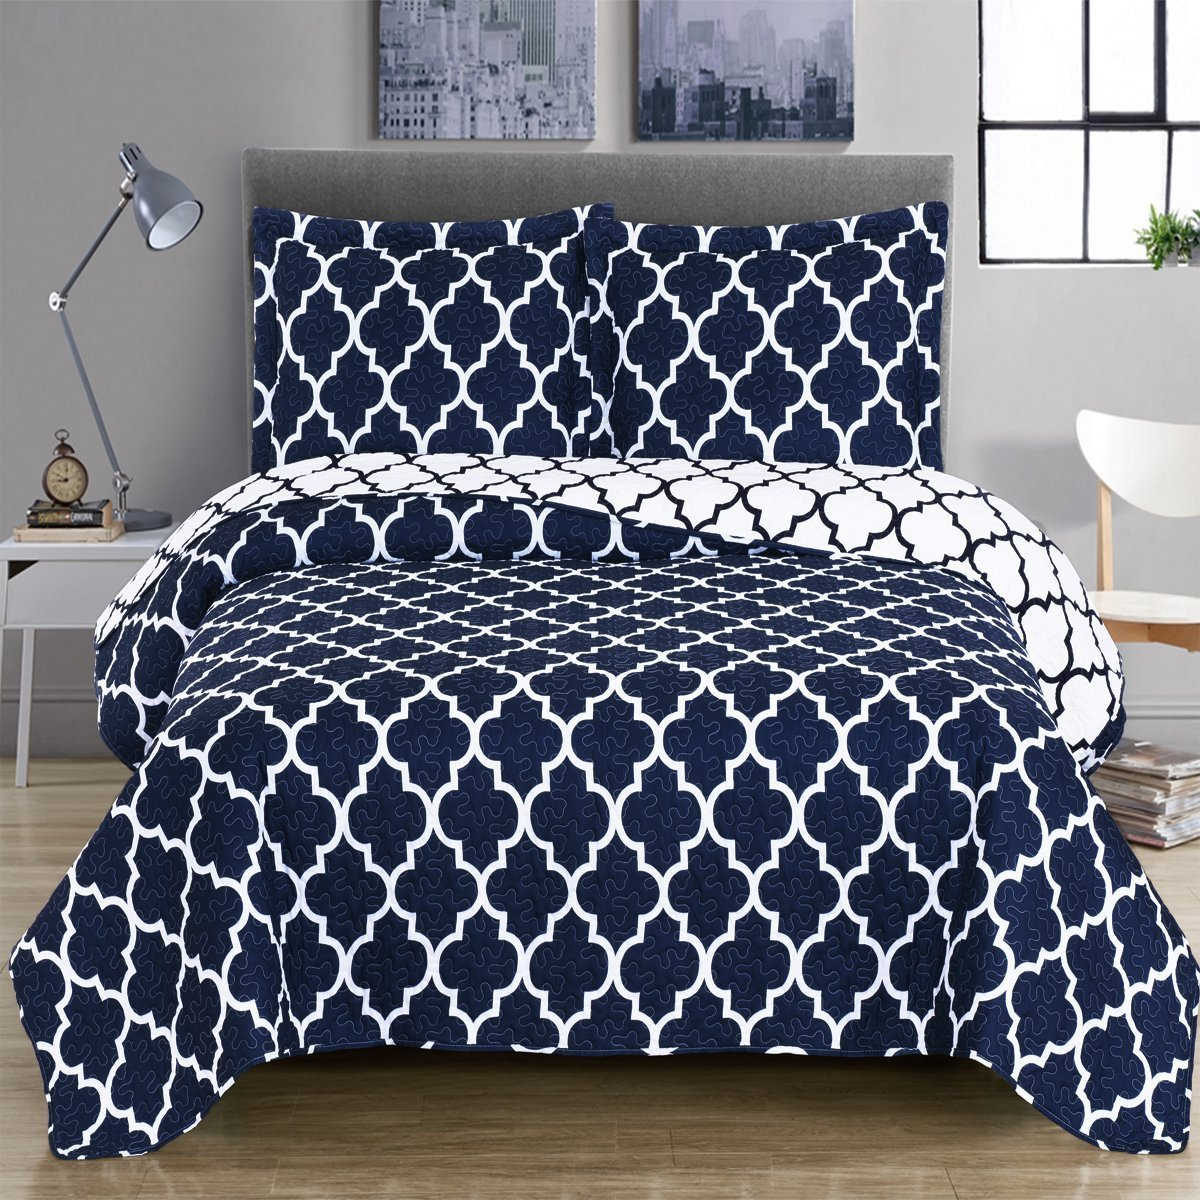 Meridian- Navy with White- King/Cal king Size, Over-Sized Quilt 3pc set, Luxury Microfiber Printed Coverlet